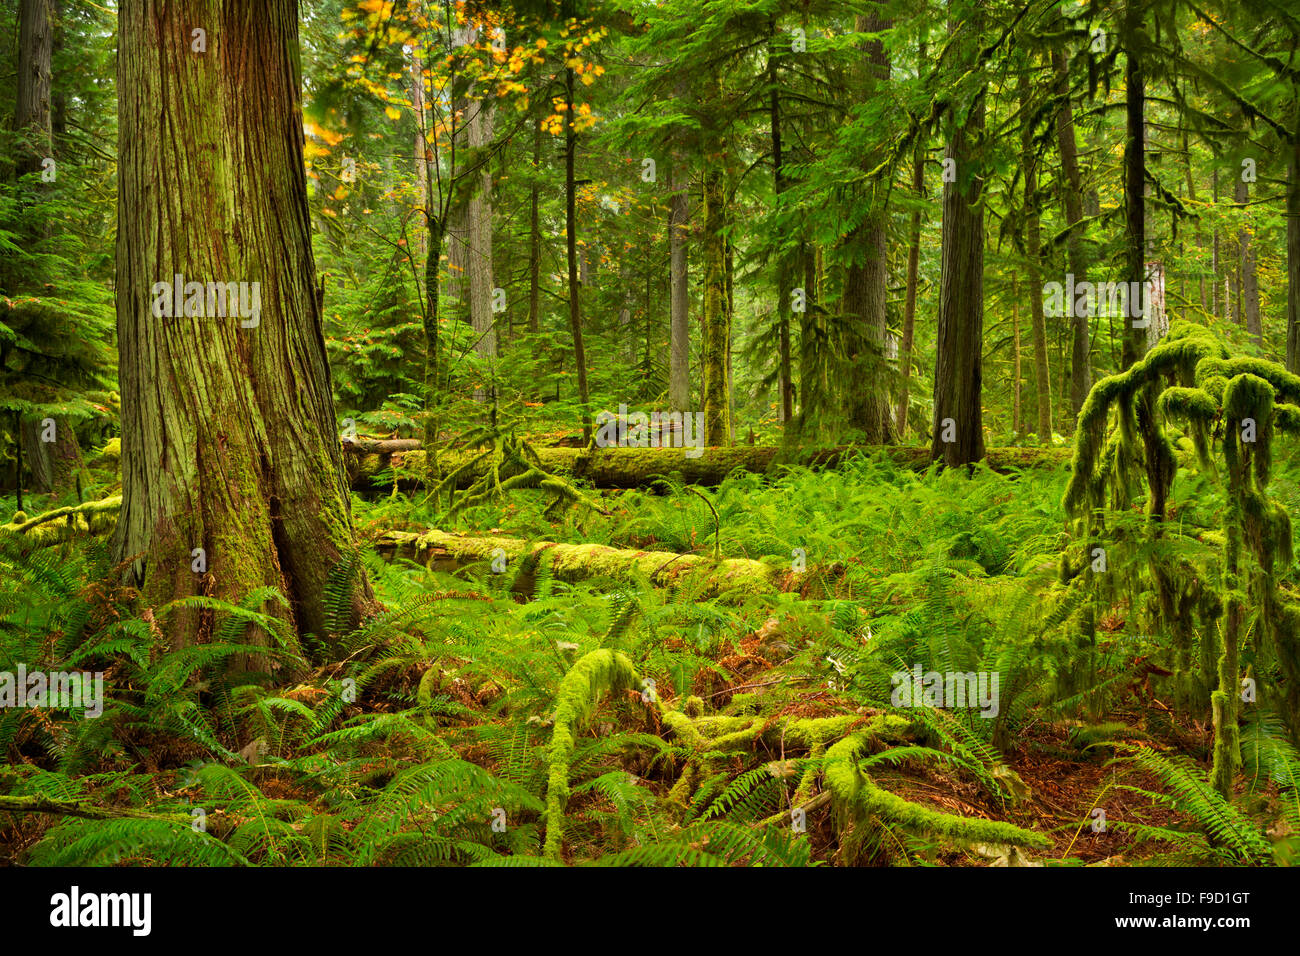 Lush rainforest in the Cathedral Grove on Vancouver Island, Canada. - Stock Image